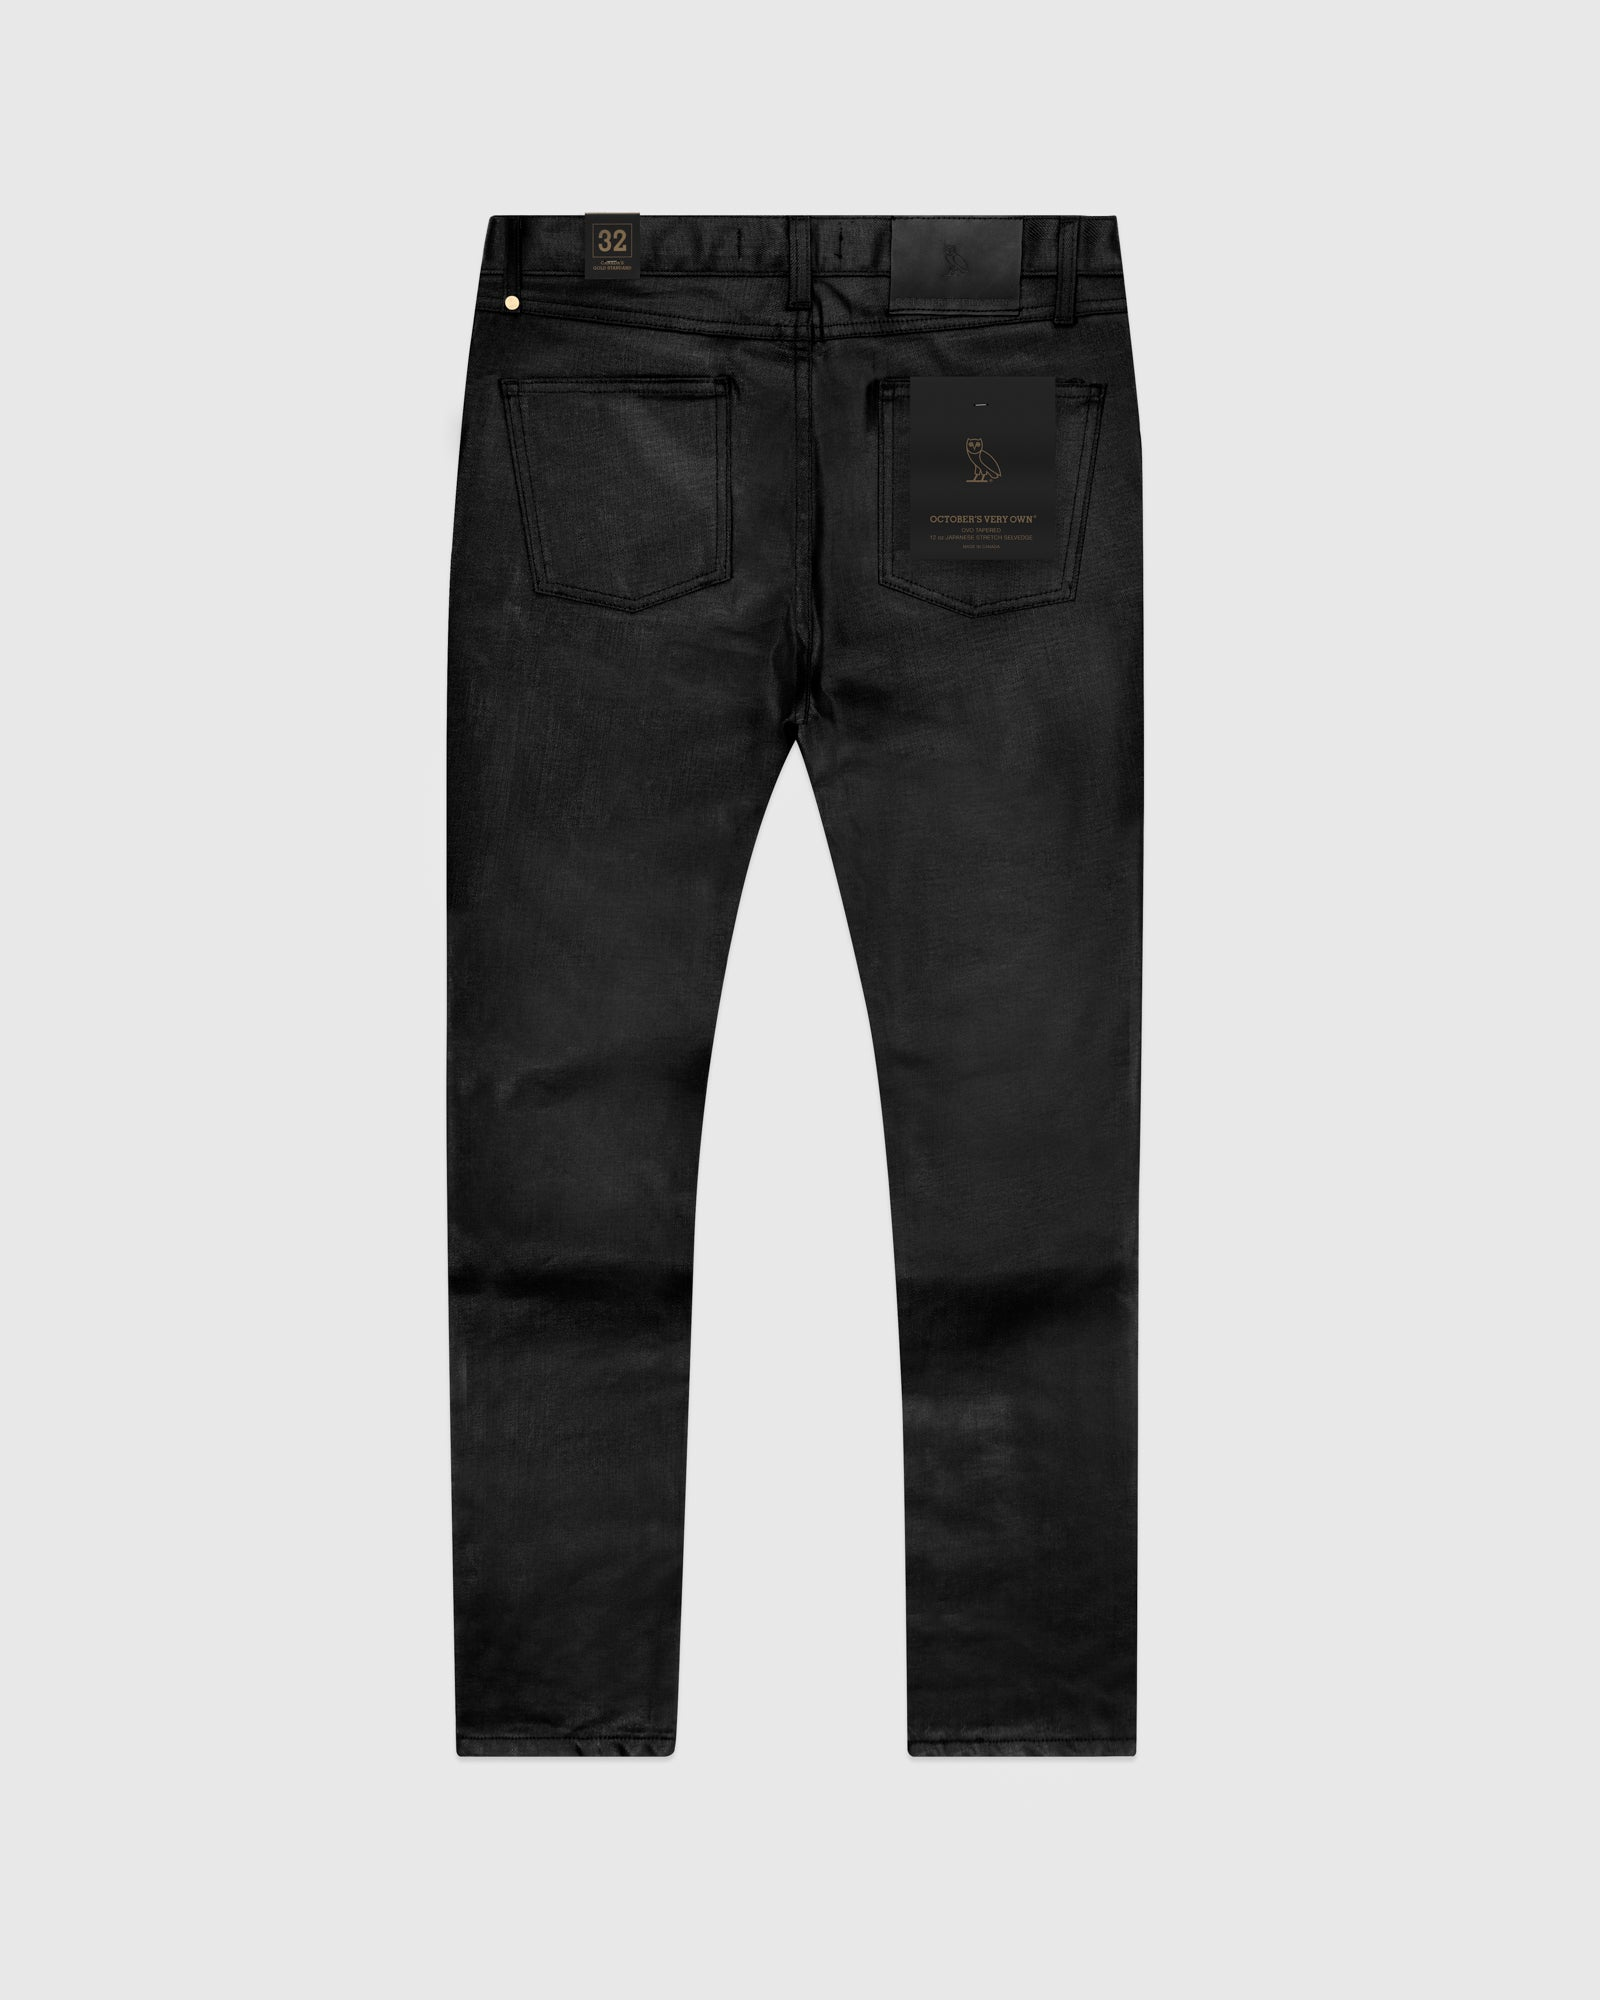 WAXED JEANS - BLACK IMAGE #2